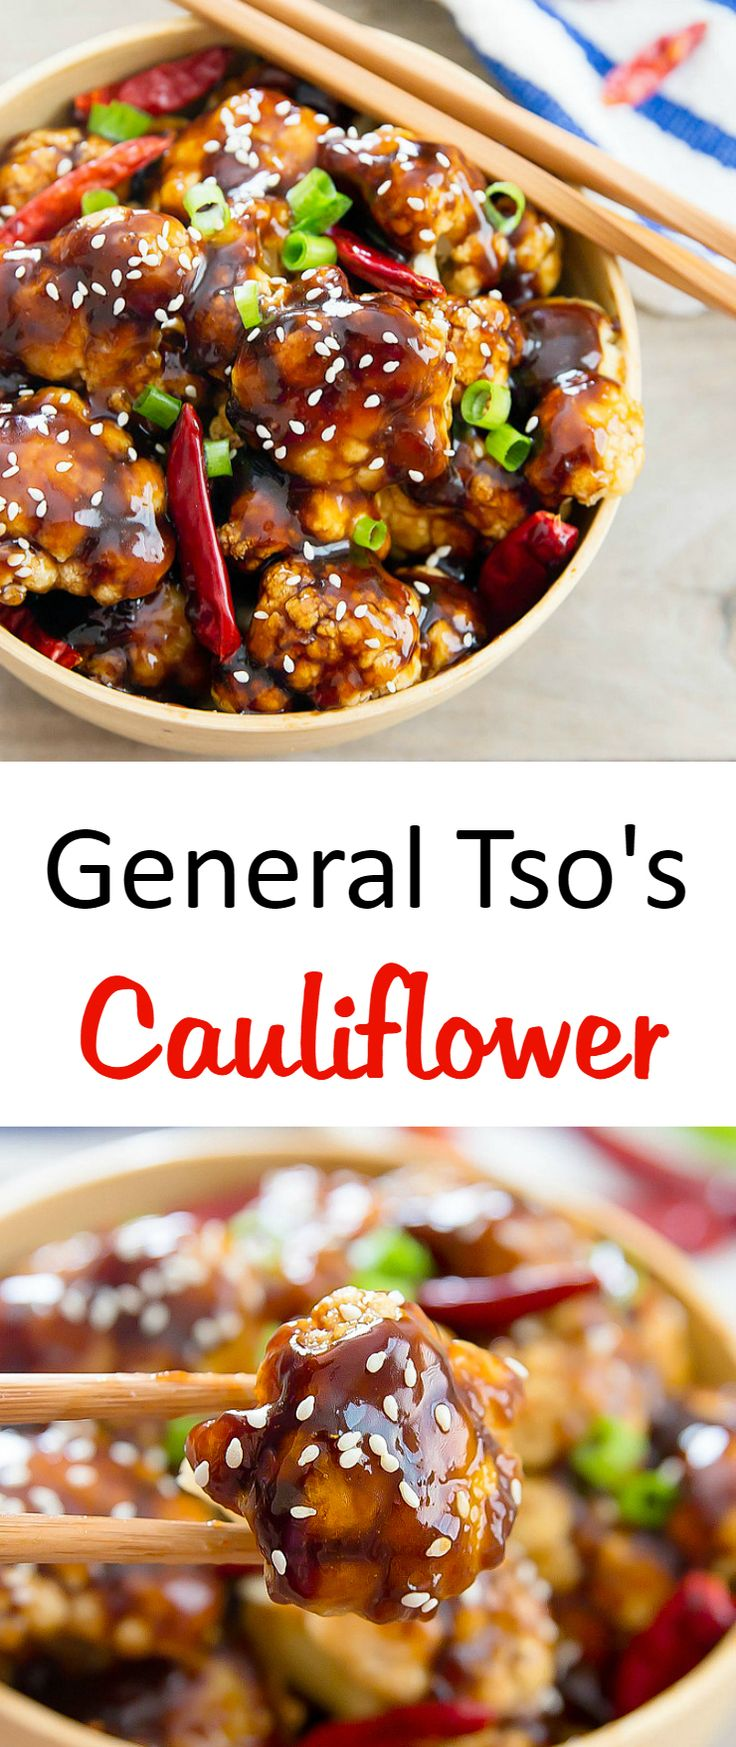 This is a healthier, low-carb version of General Tso's Chicken, using baked cauliflower florets rather than fried chicken pieces. Here is my latest cauliflower dish. I'm having fun replacing a lot of my chicken dishes with cauliflower instead. Now that spring is here and vegetable prices are coming down, I can really play around and …